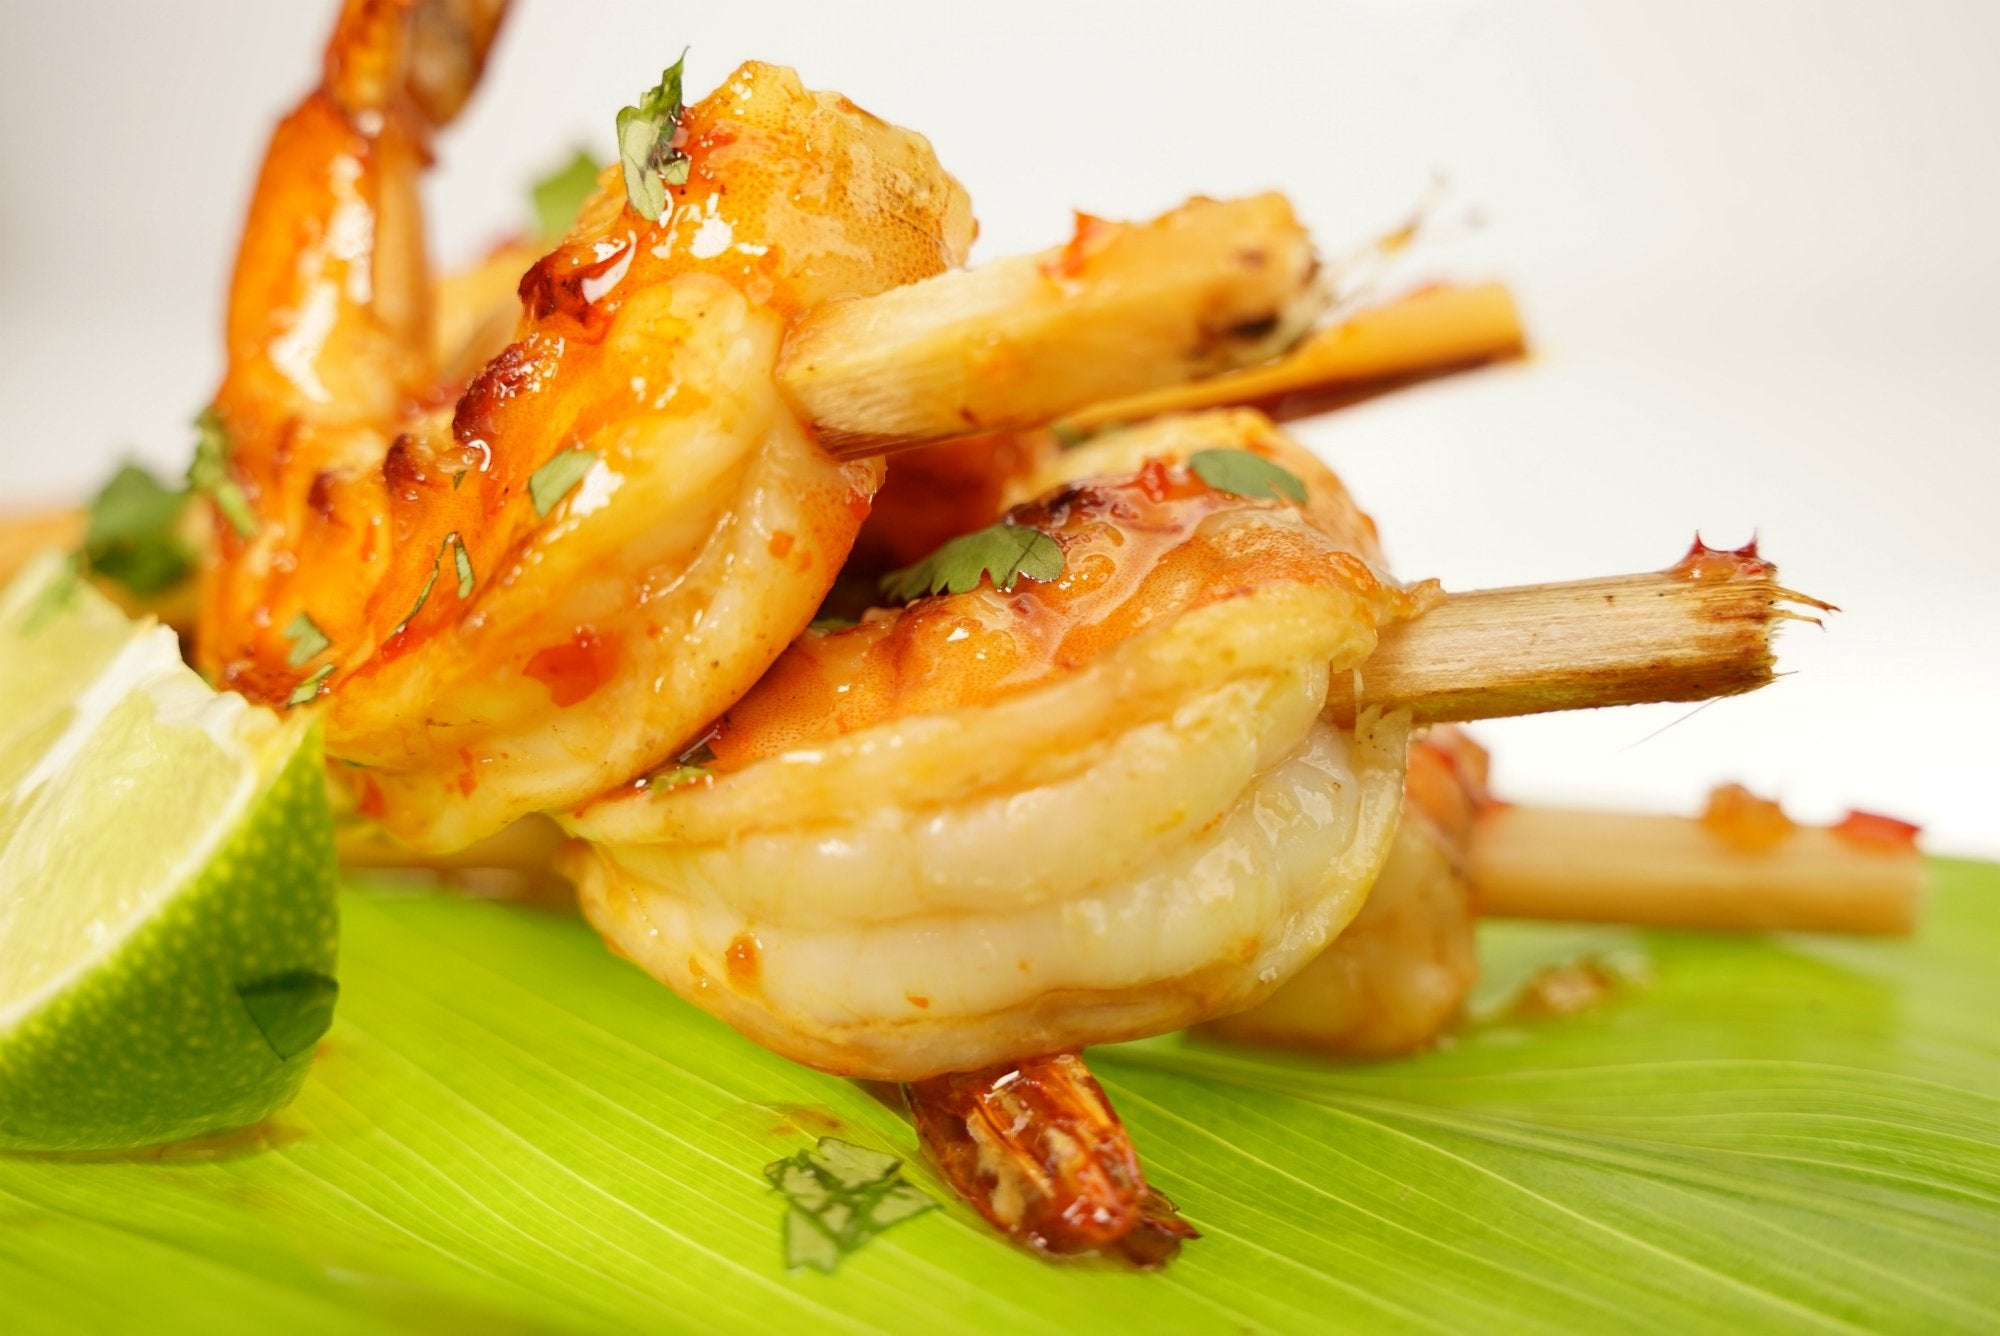 Hawaii Sugarcane Skewers With Prawns, Thai Sauce And Hokkaido Sweet Mochi Rice